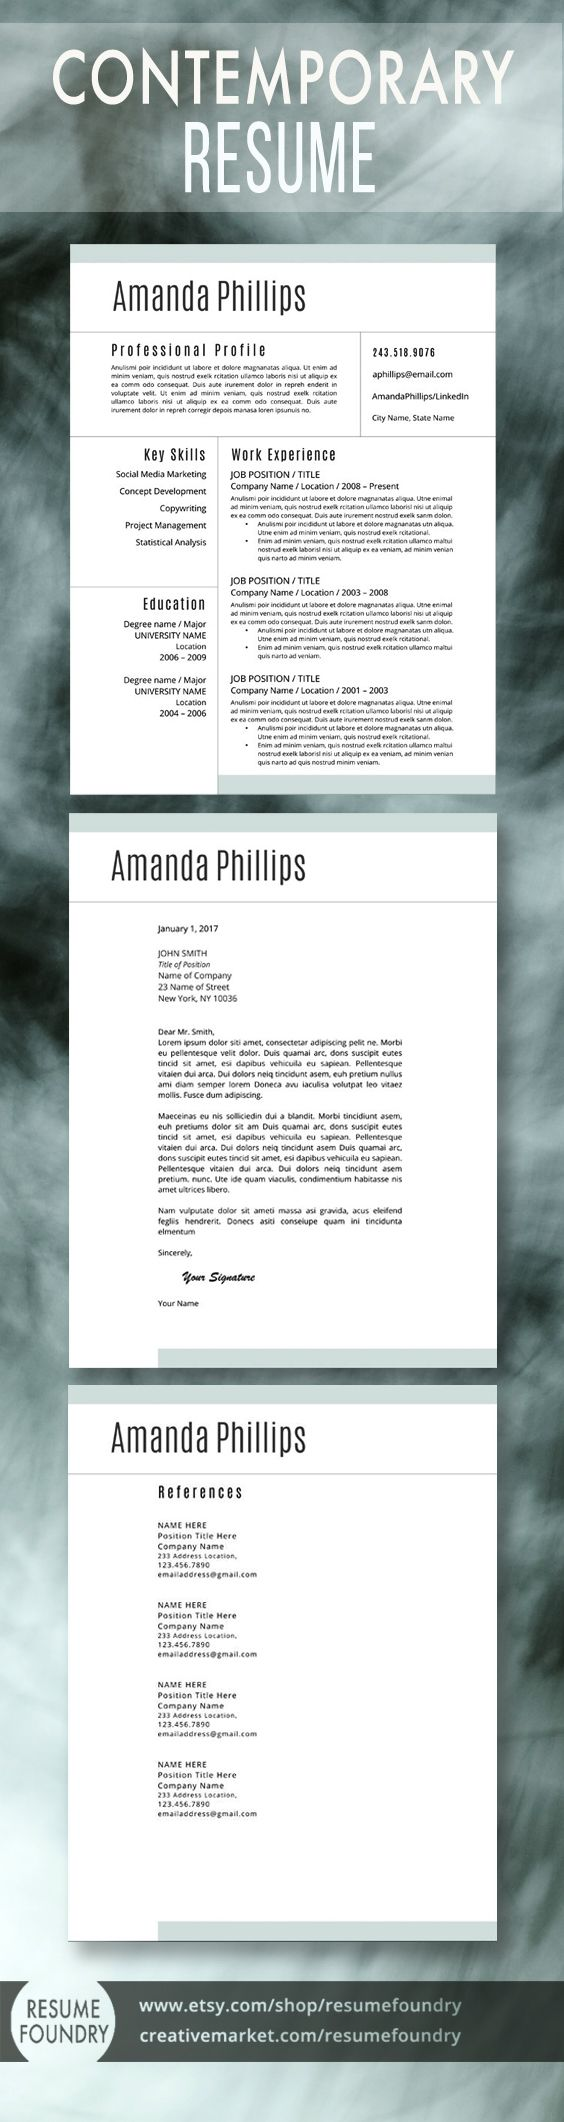 Beautiful modern resume template by resume foundry one two or beautiful modern resume template by resume foundry one two or three page resume spiritdancerdesigns Images